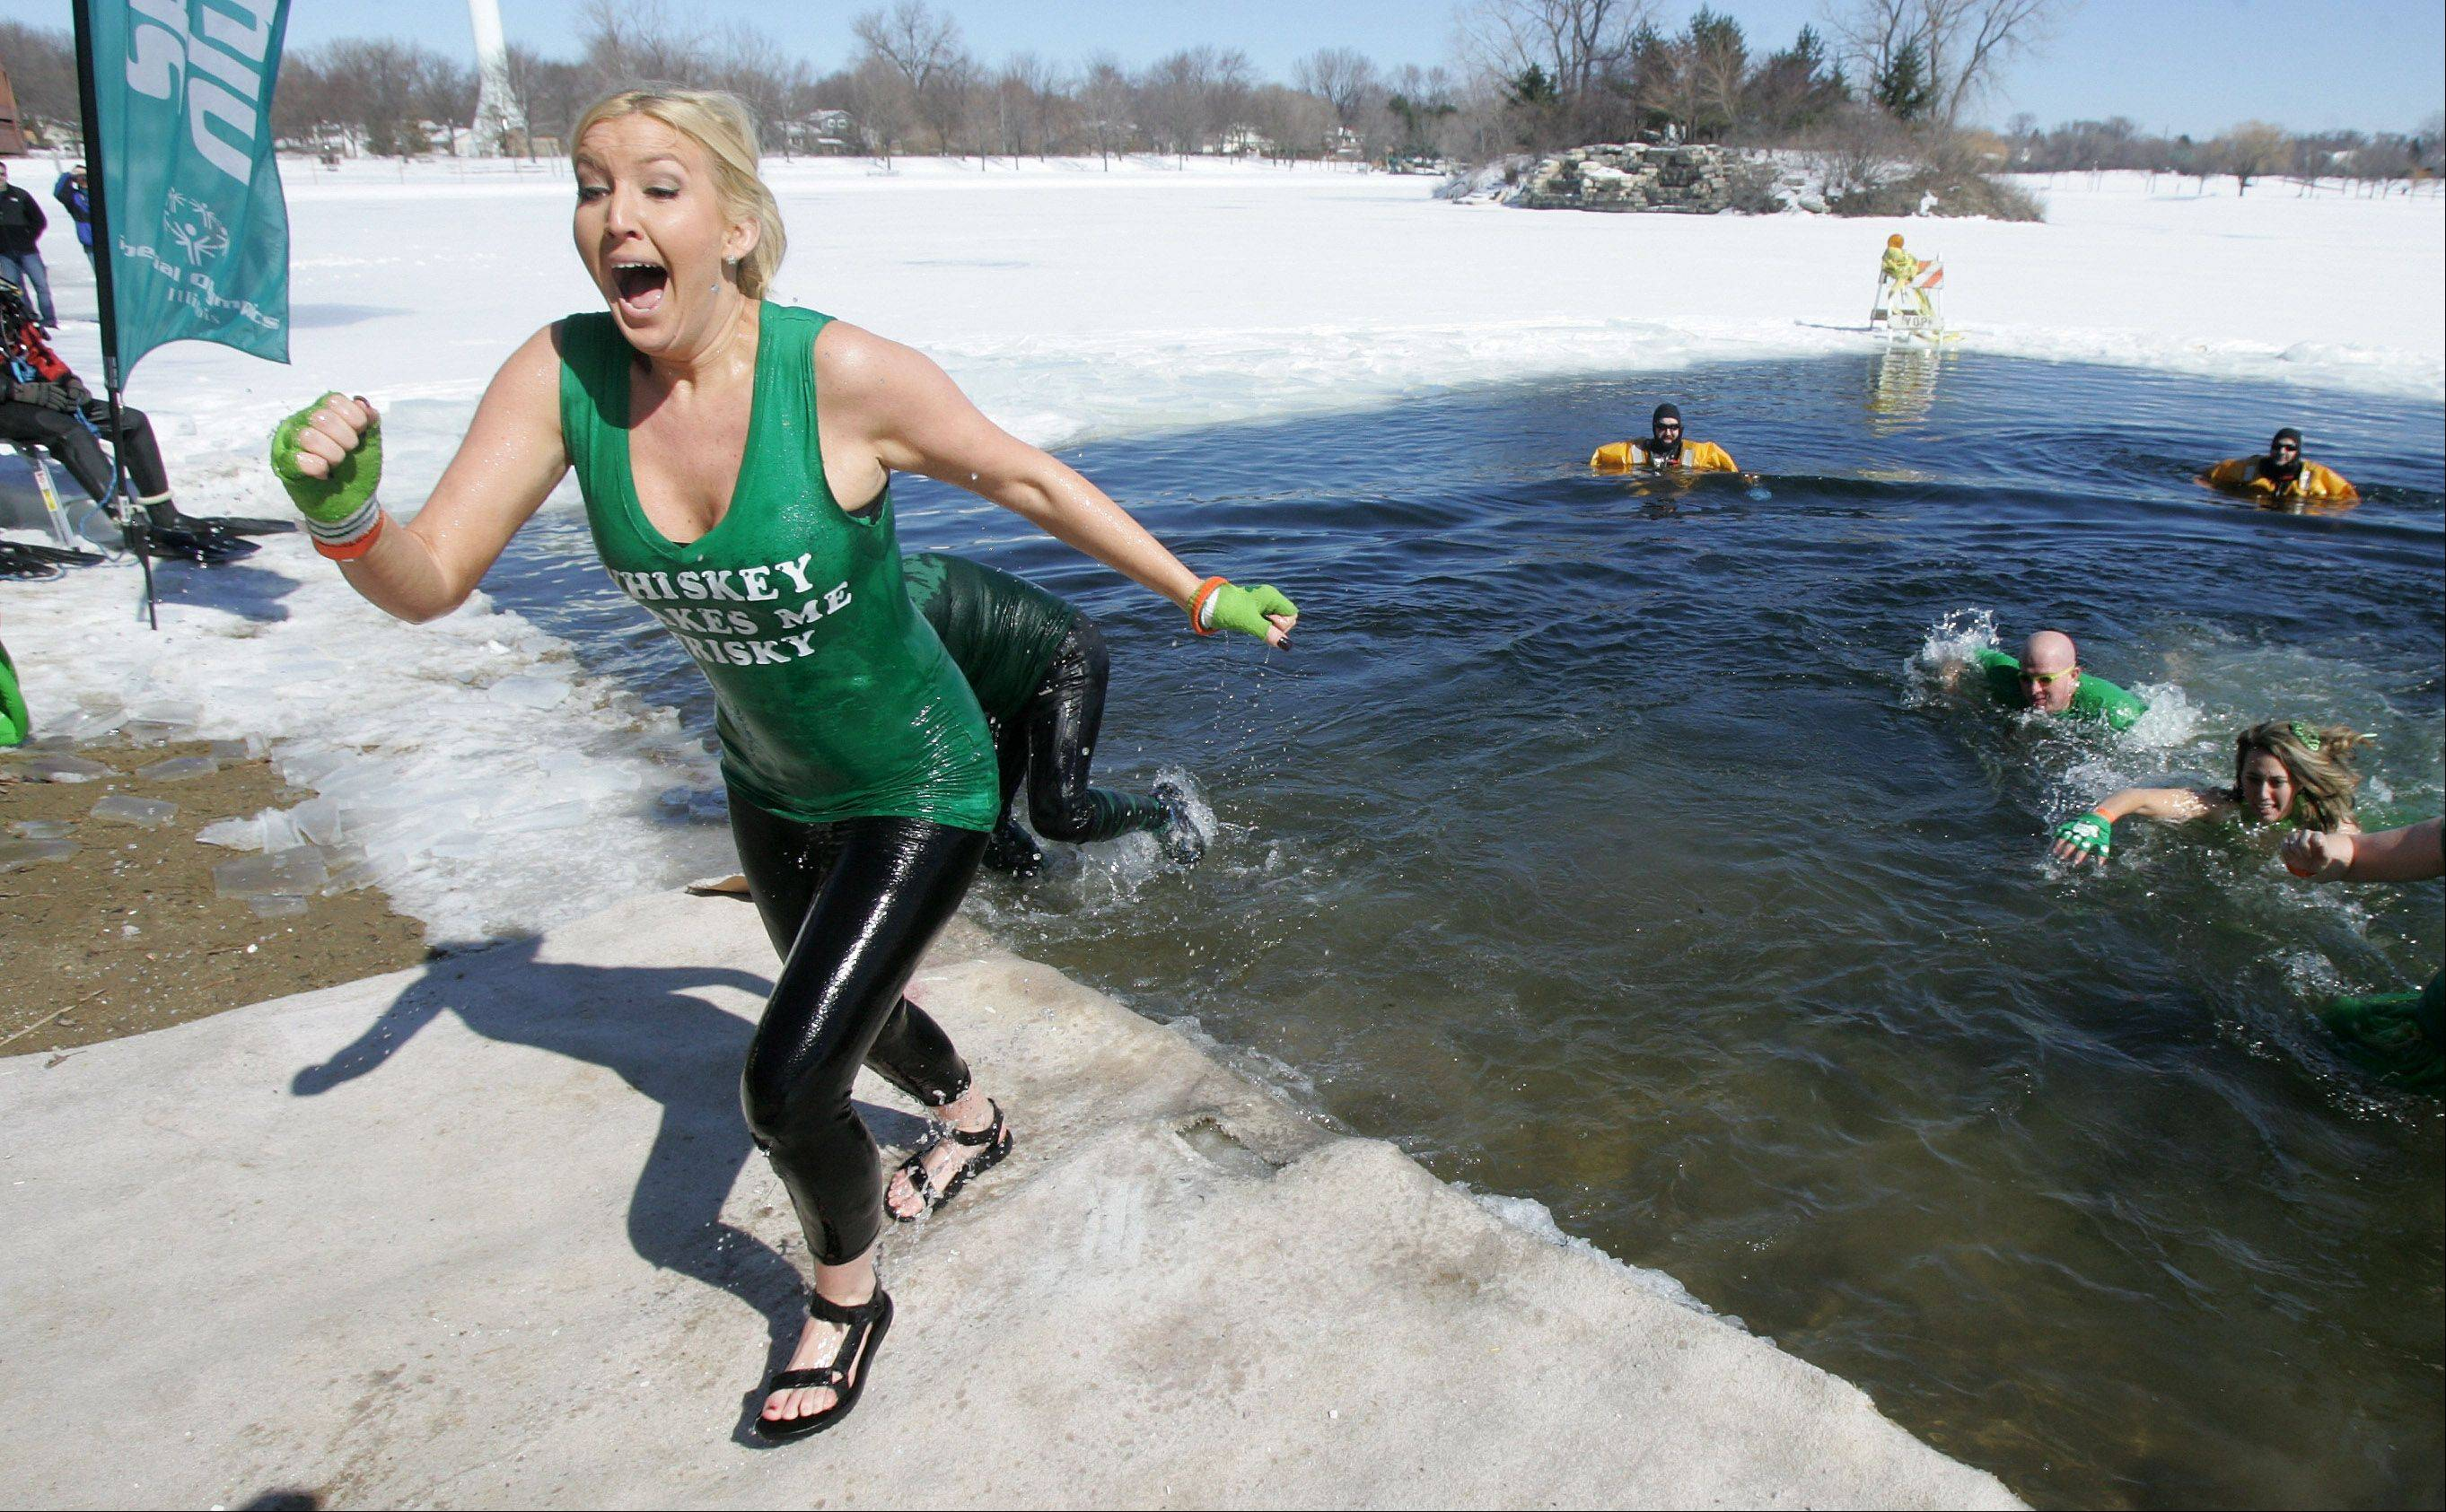 Lisa Musialowicz, with the Arlington Heights Police Department team called Ice Cold Cops, screams as she comes out of the frigid water during the 2013 Palatine Polar Plunge Sunday at Twin Lakes Recreation Area in Palatine. More then 290 people braved the cold to take the plunge in the event sponsored by the Law Enforcement Torch Run to benefit Special Olympics Illinois.